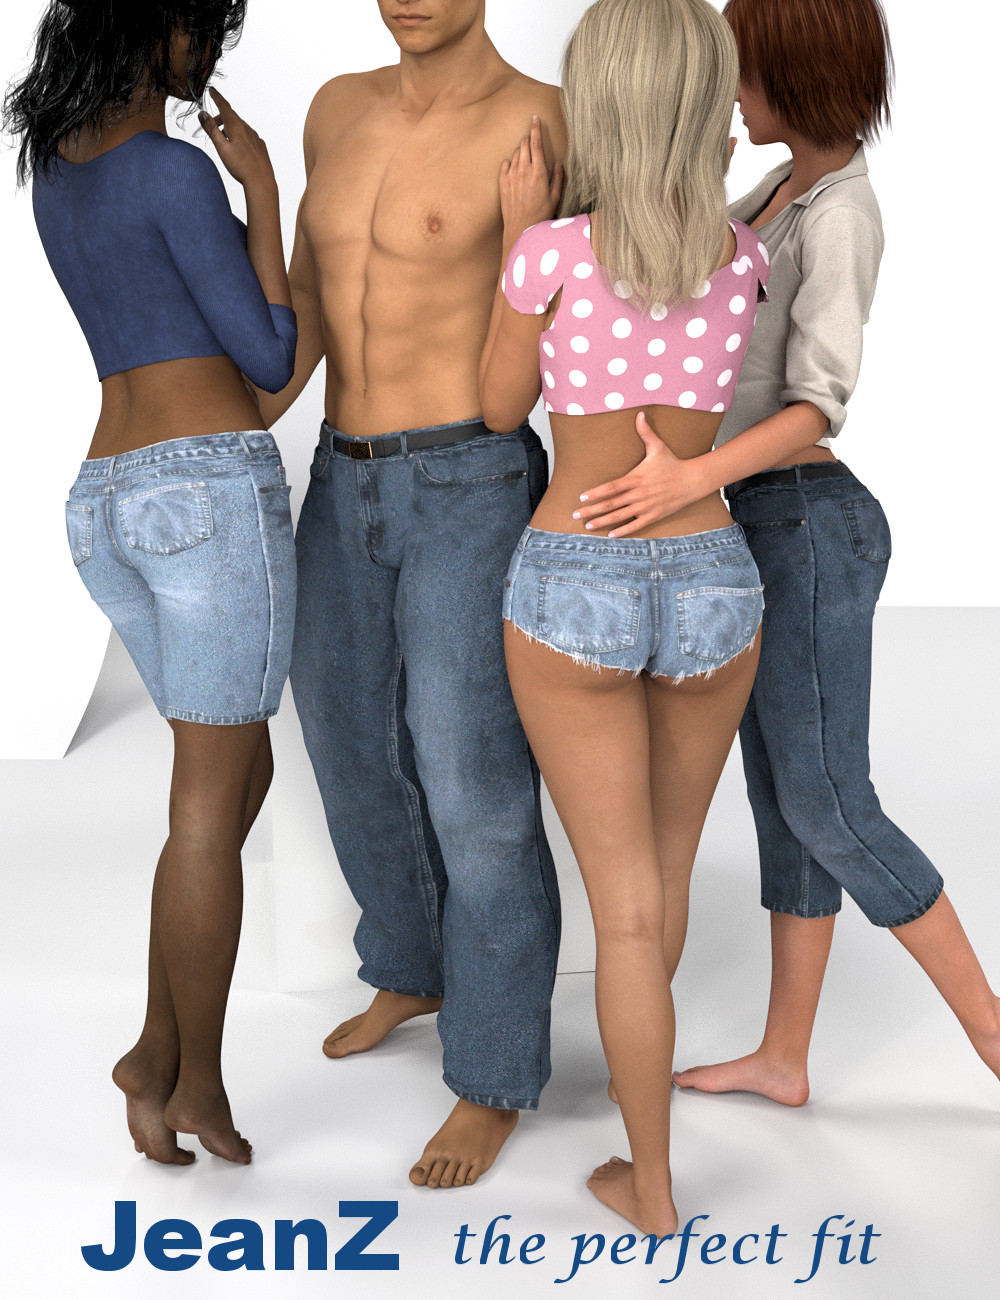 JeanZ for Genesis 3 by: the3dwizard, 3D Models by Daz 3D